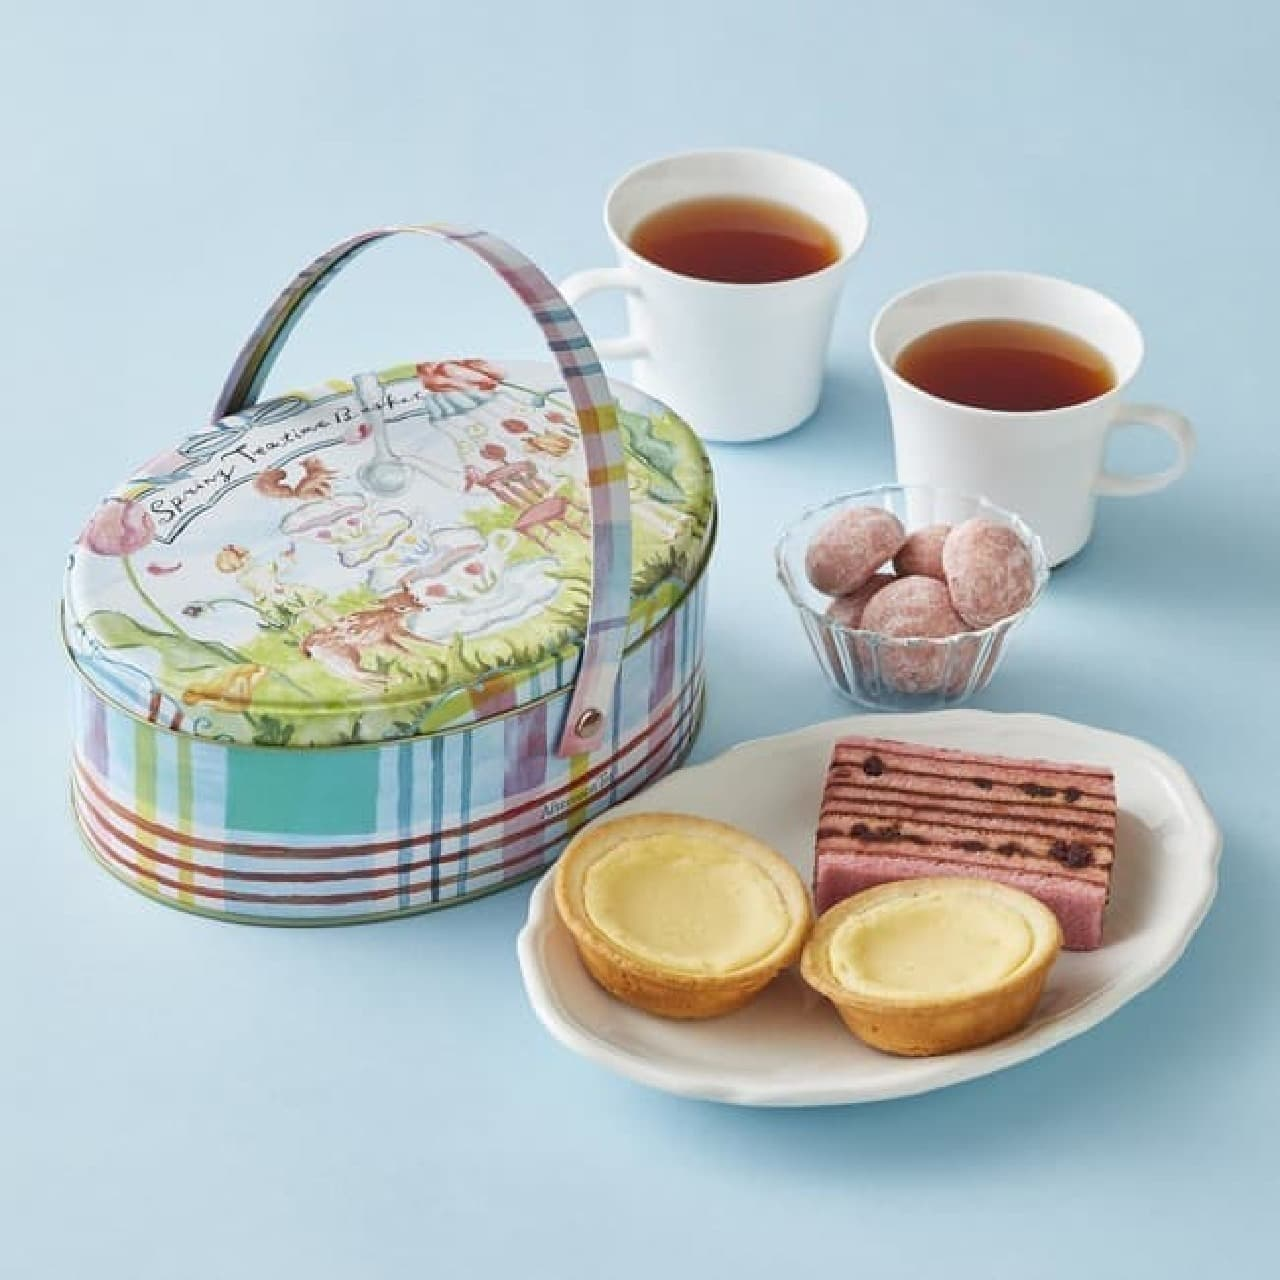 Afternoon Teaから春のお茶&お菓子セット